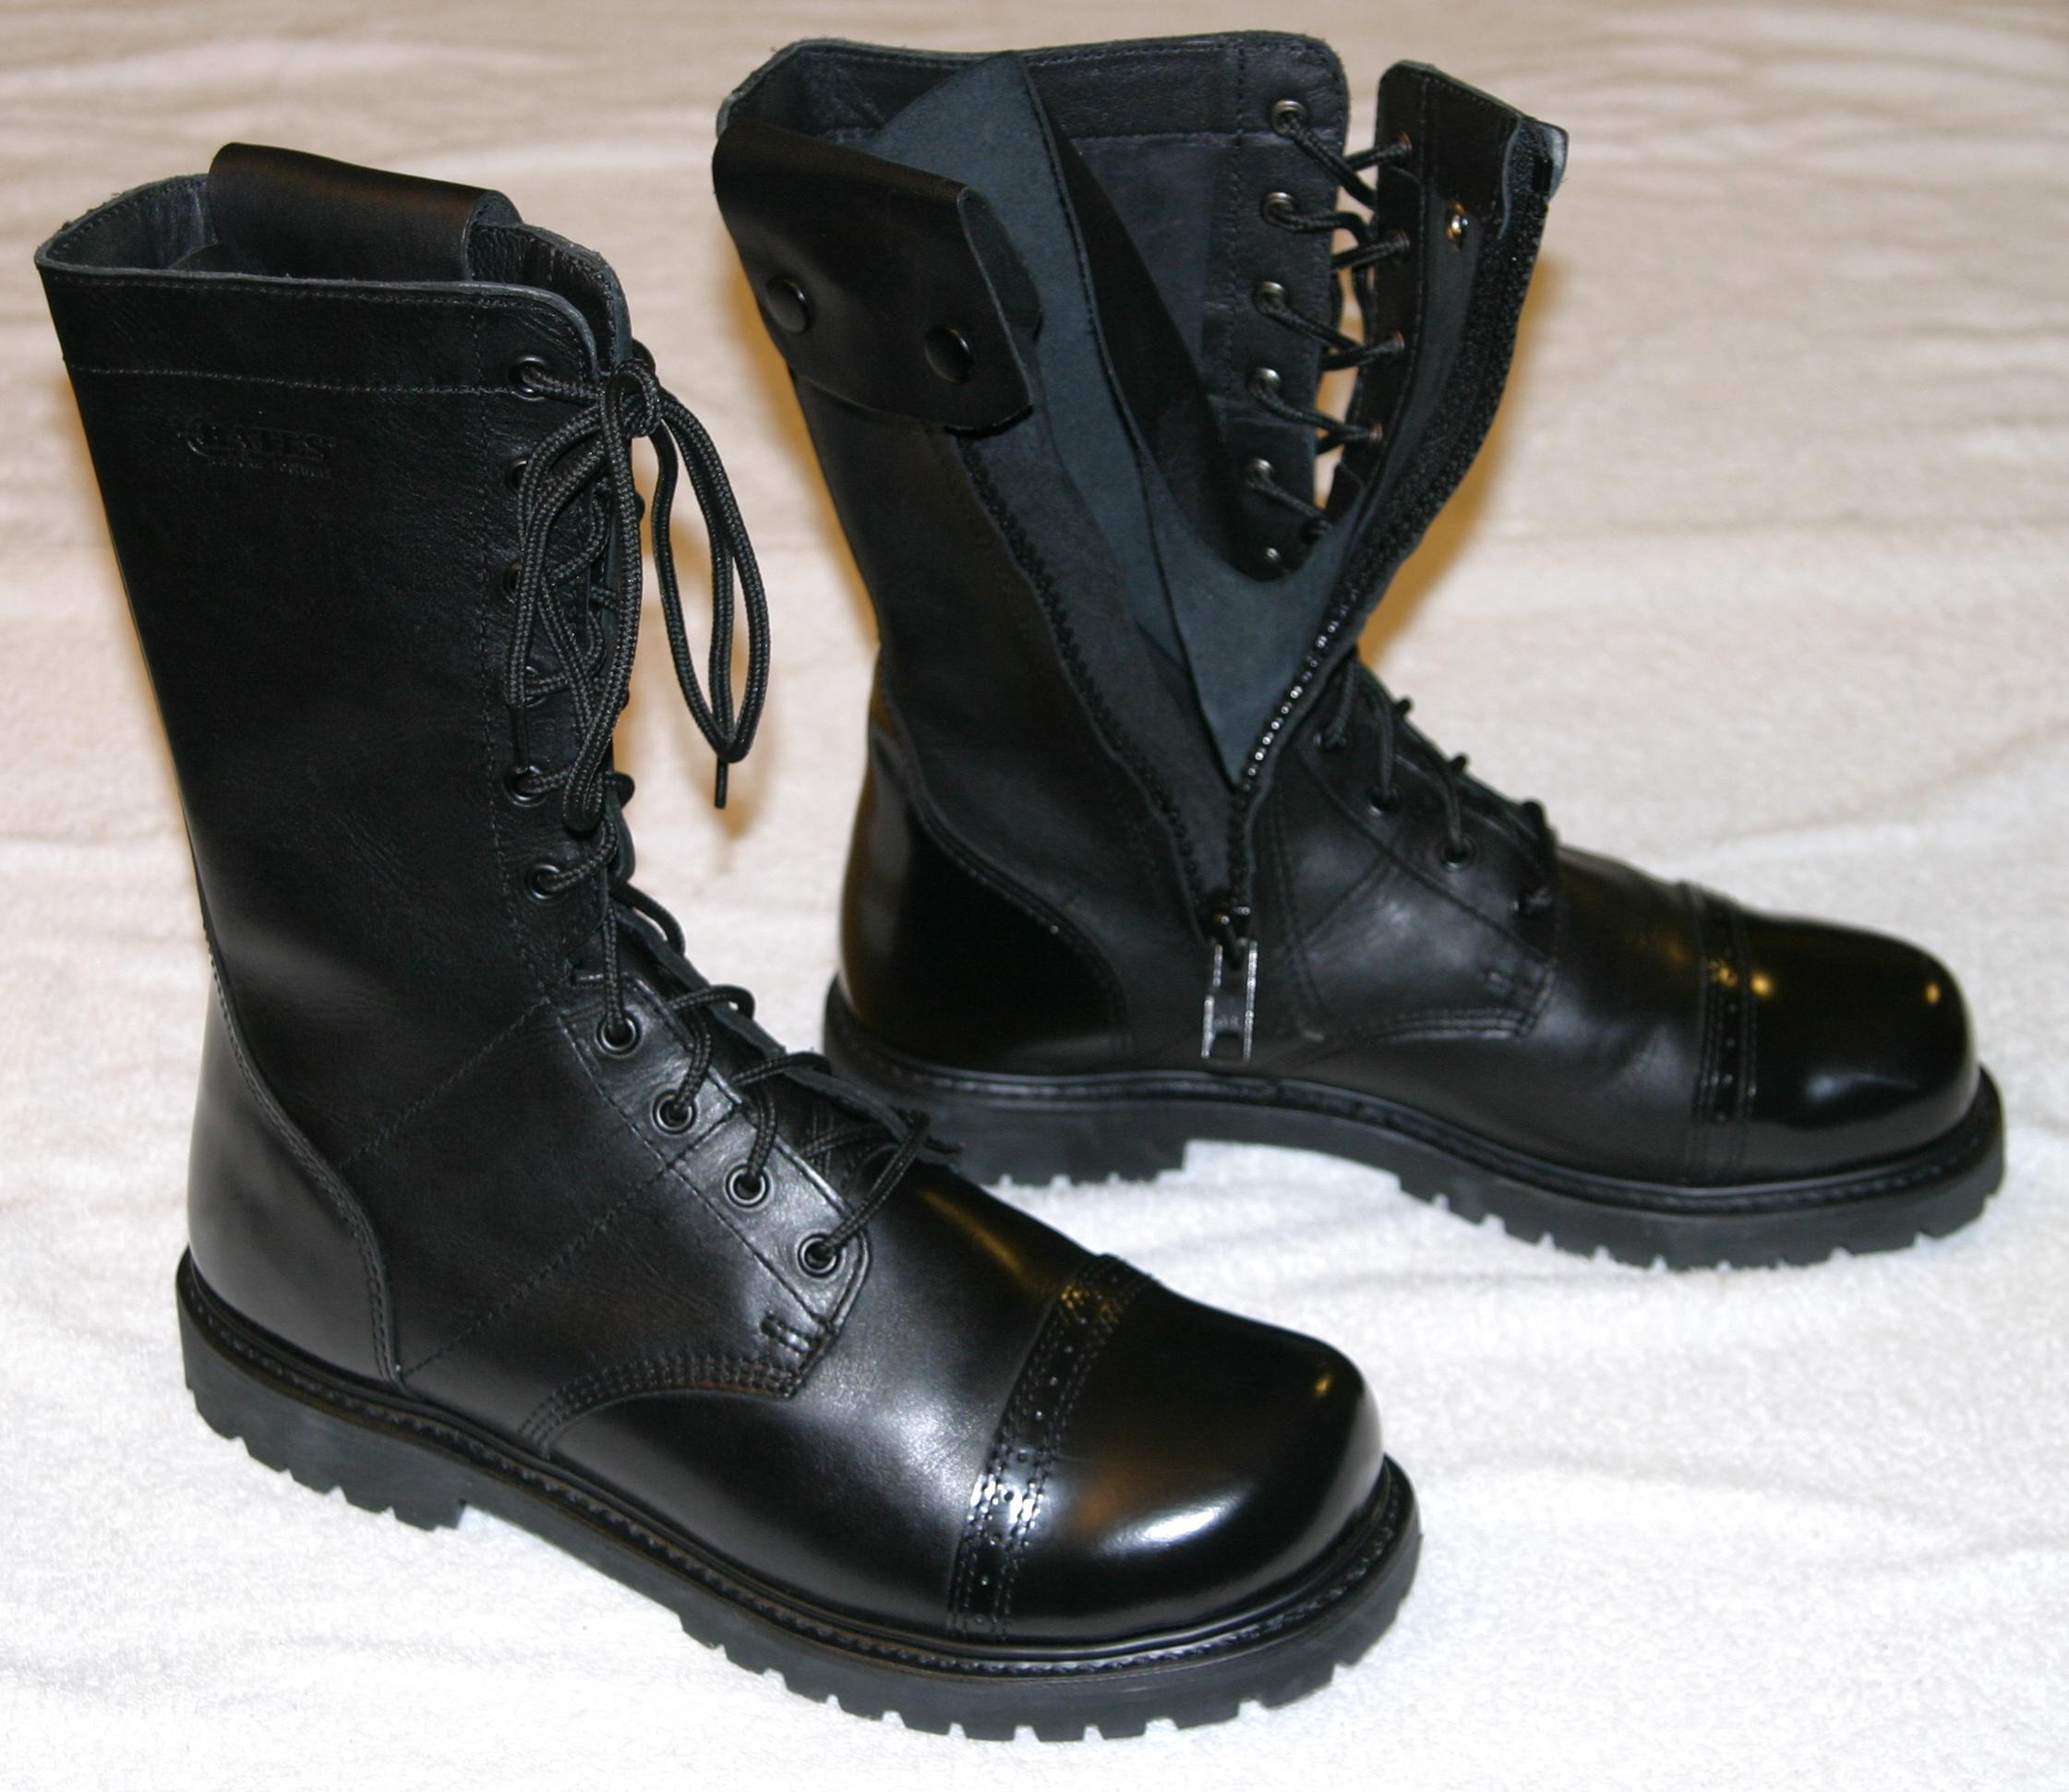 Description Bates enforcer paratrooper boots.jpg